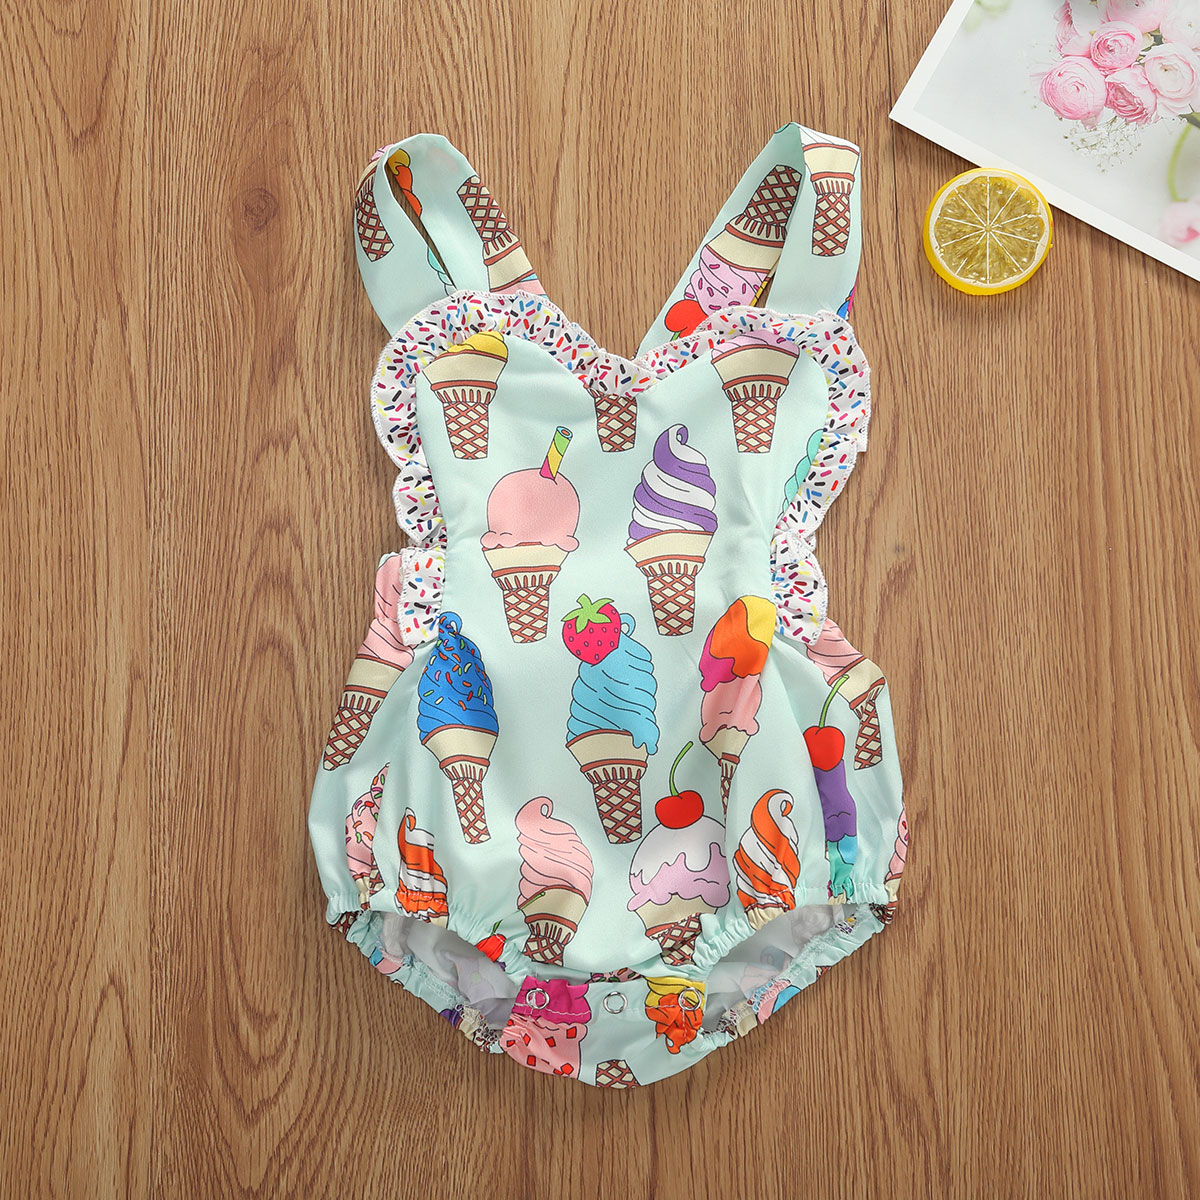 Summer Cute Toddler Baby Girls Boys 0-18M Rompers Ice Cream Print Ruffles Sleeveless Backless Jumpsuits